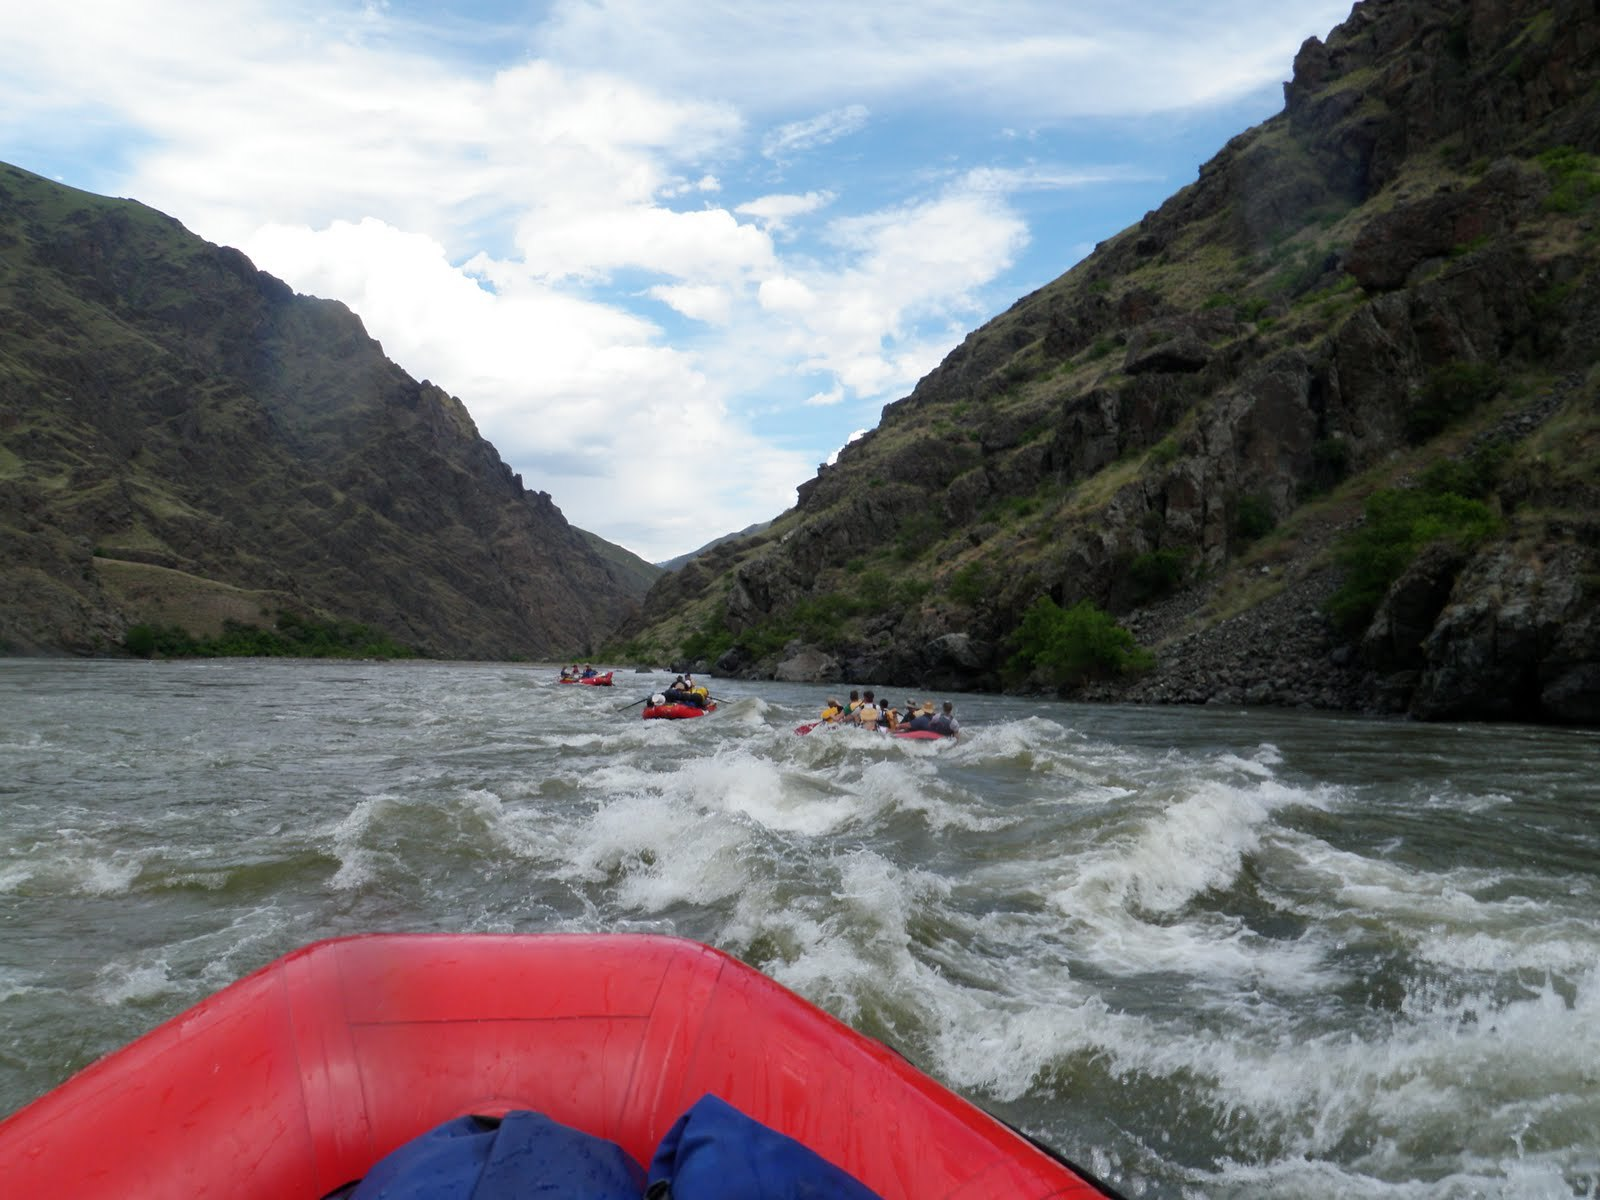 Rafting the Snake